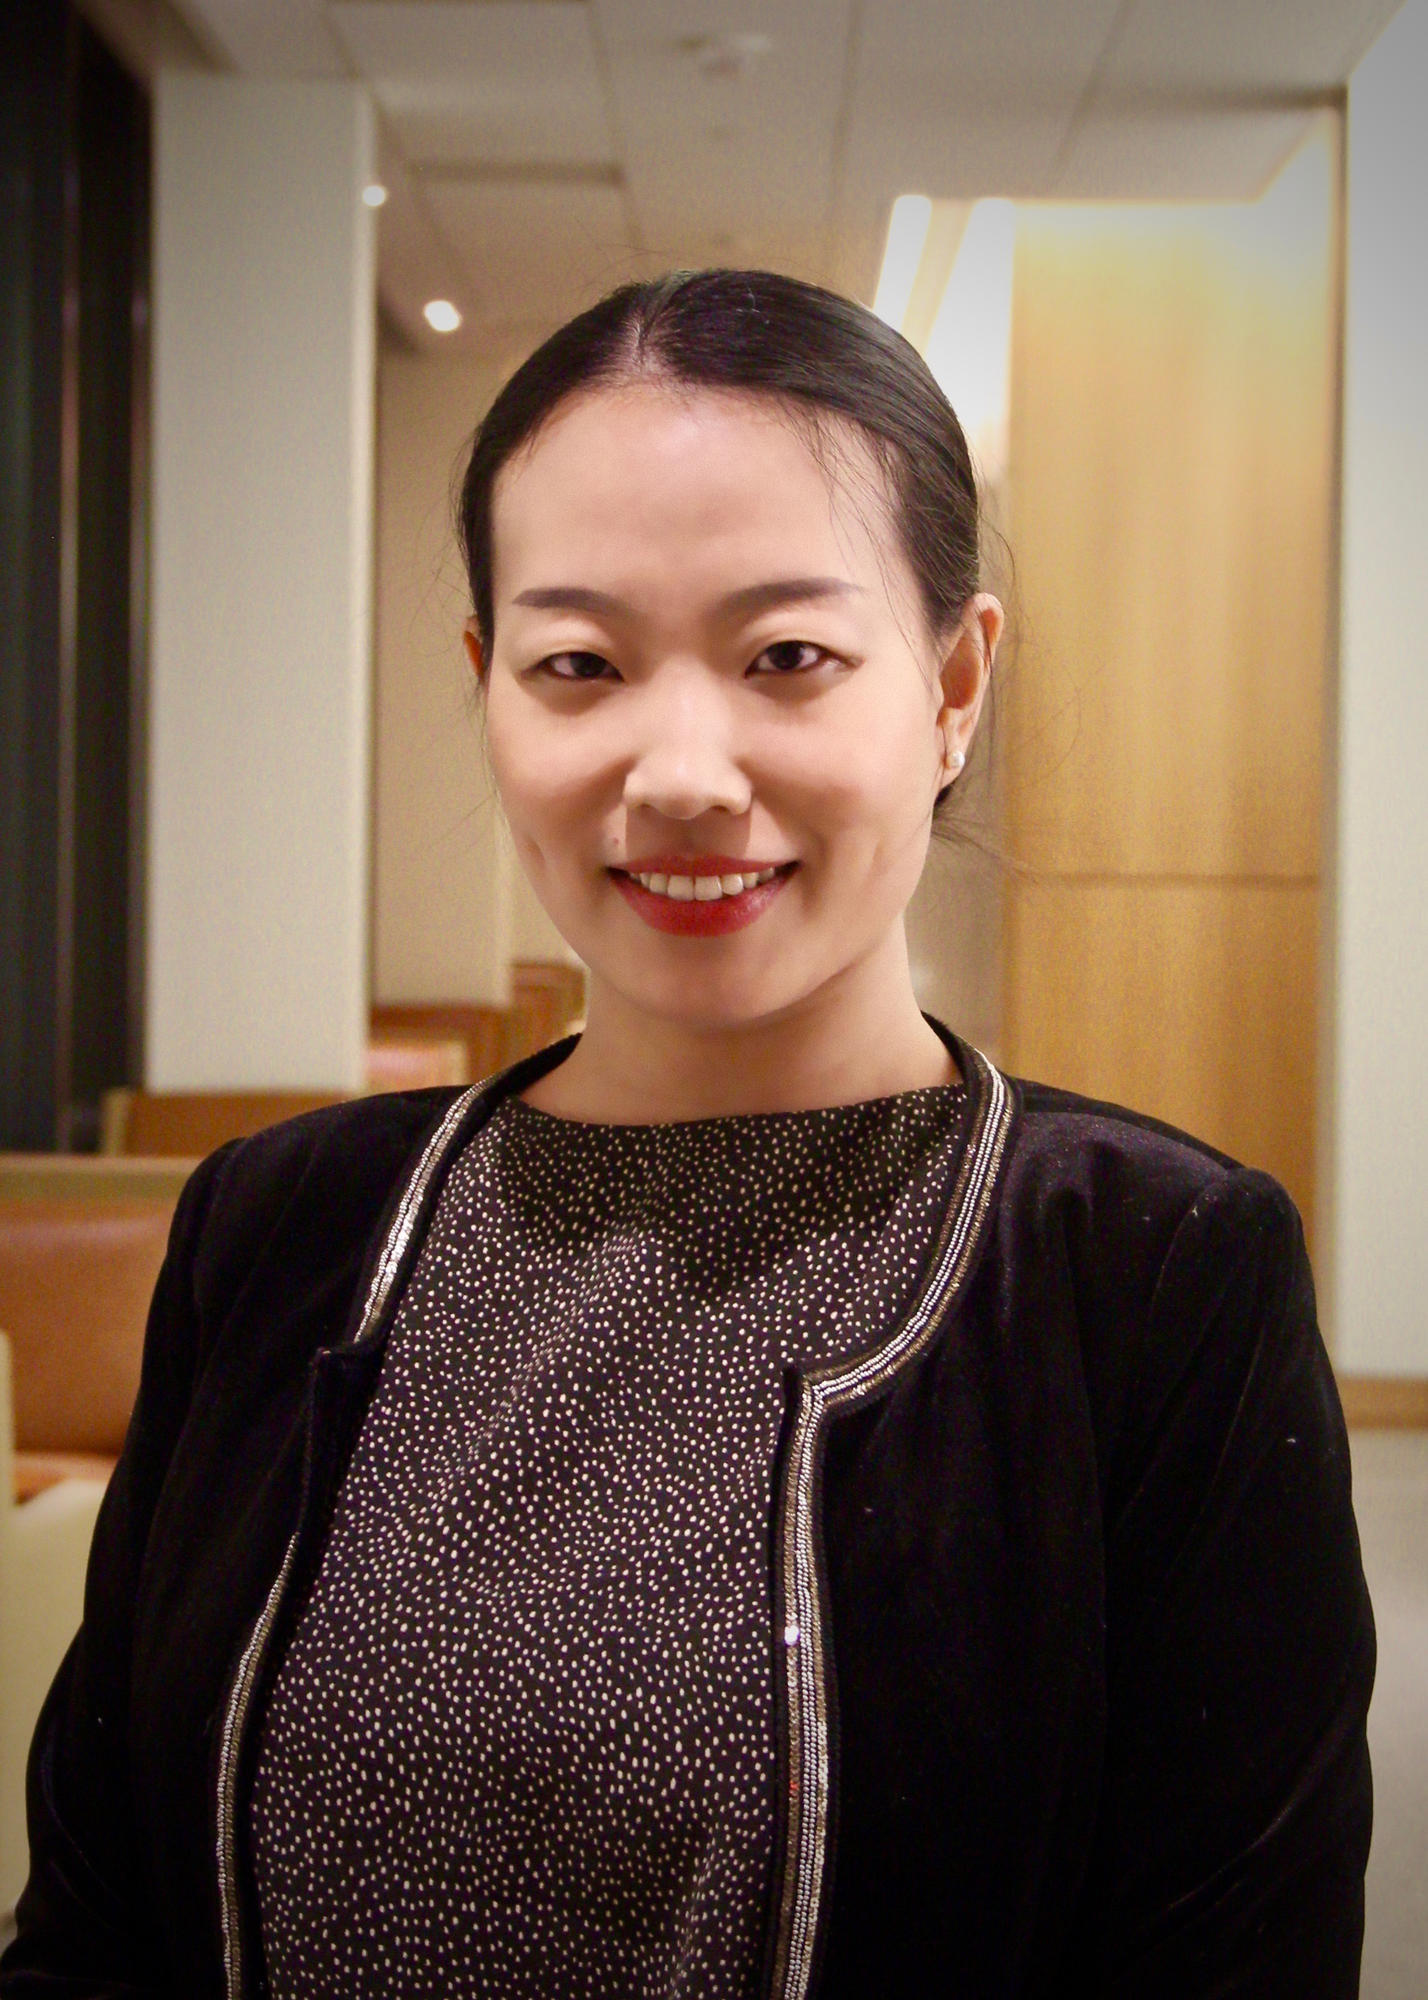 May Chengnan Wu